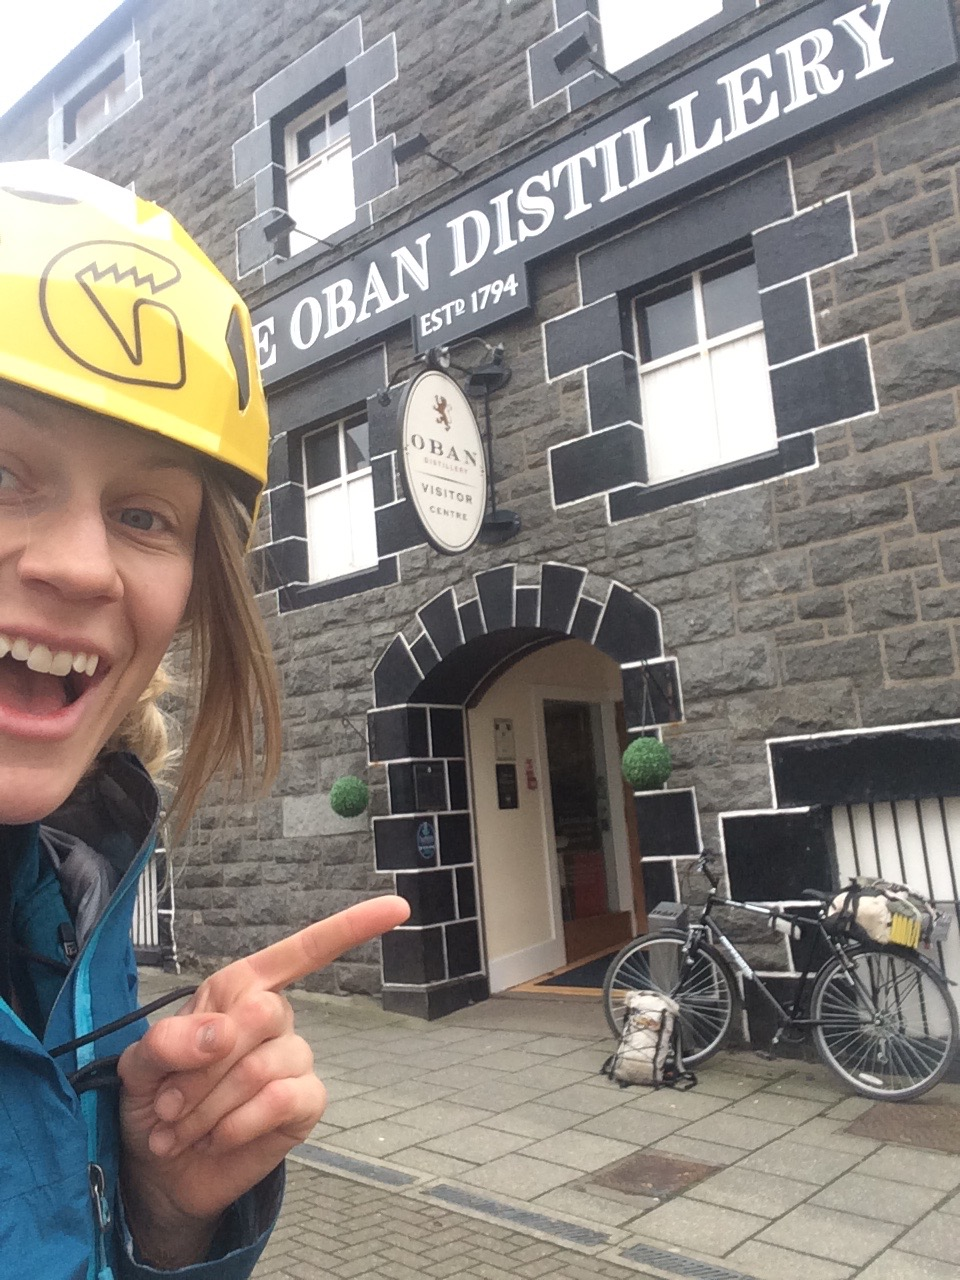 When i got to Scotland nothing was in condition, so I went to wander the country on a good 'ol January bike tour. Single malts, castles and Scottish candies. It was amazing. It totally got me ready for Scottish winter climbing. Rain and snow bring it on!!